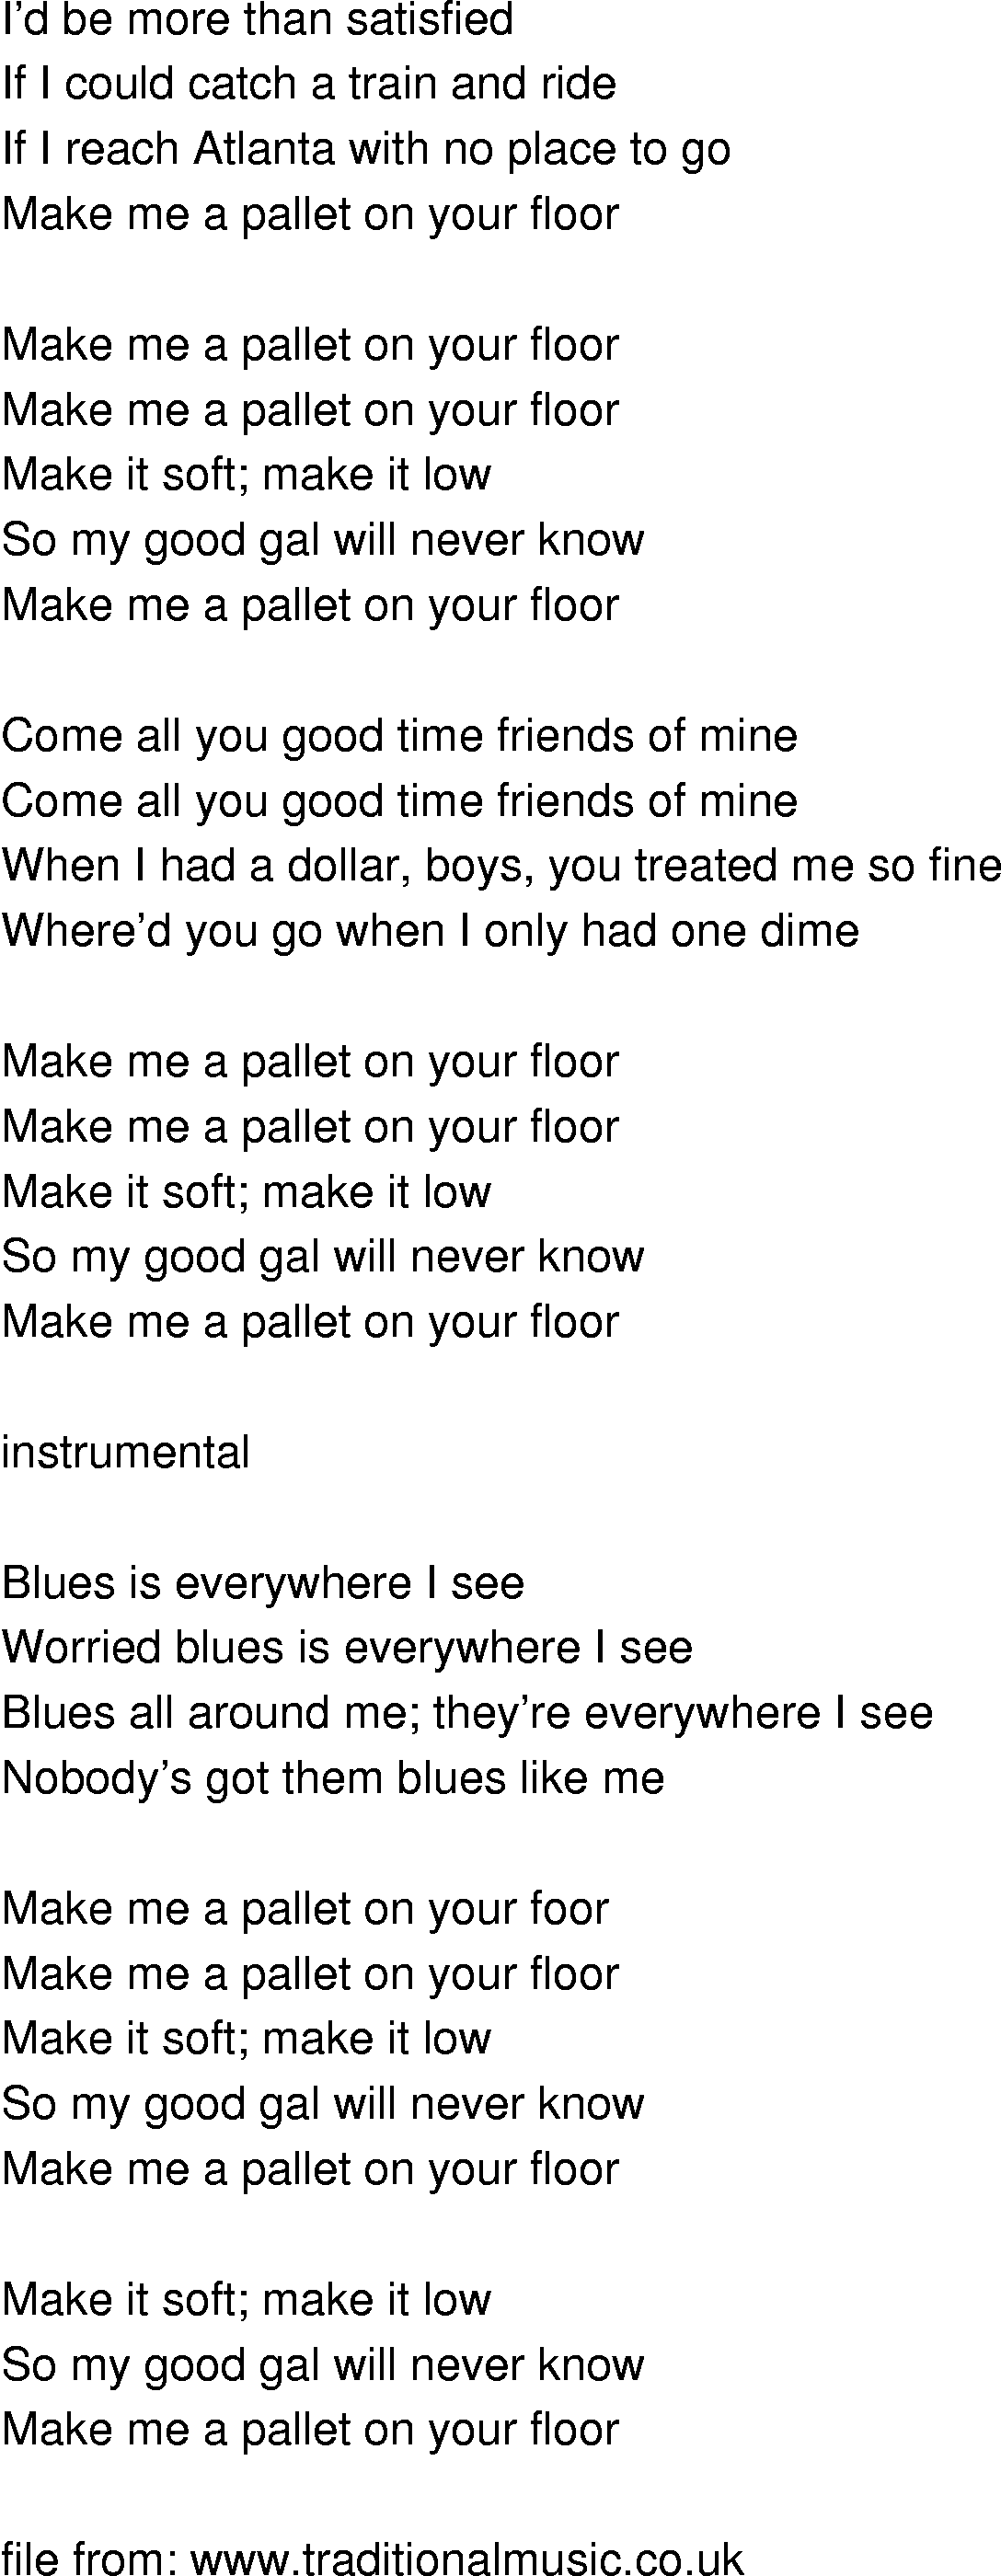 Old-Time Song Lyrics - Make Me A Pallet On Your Floor